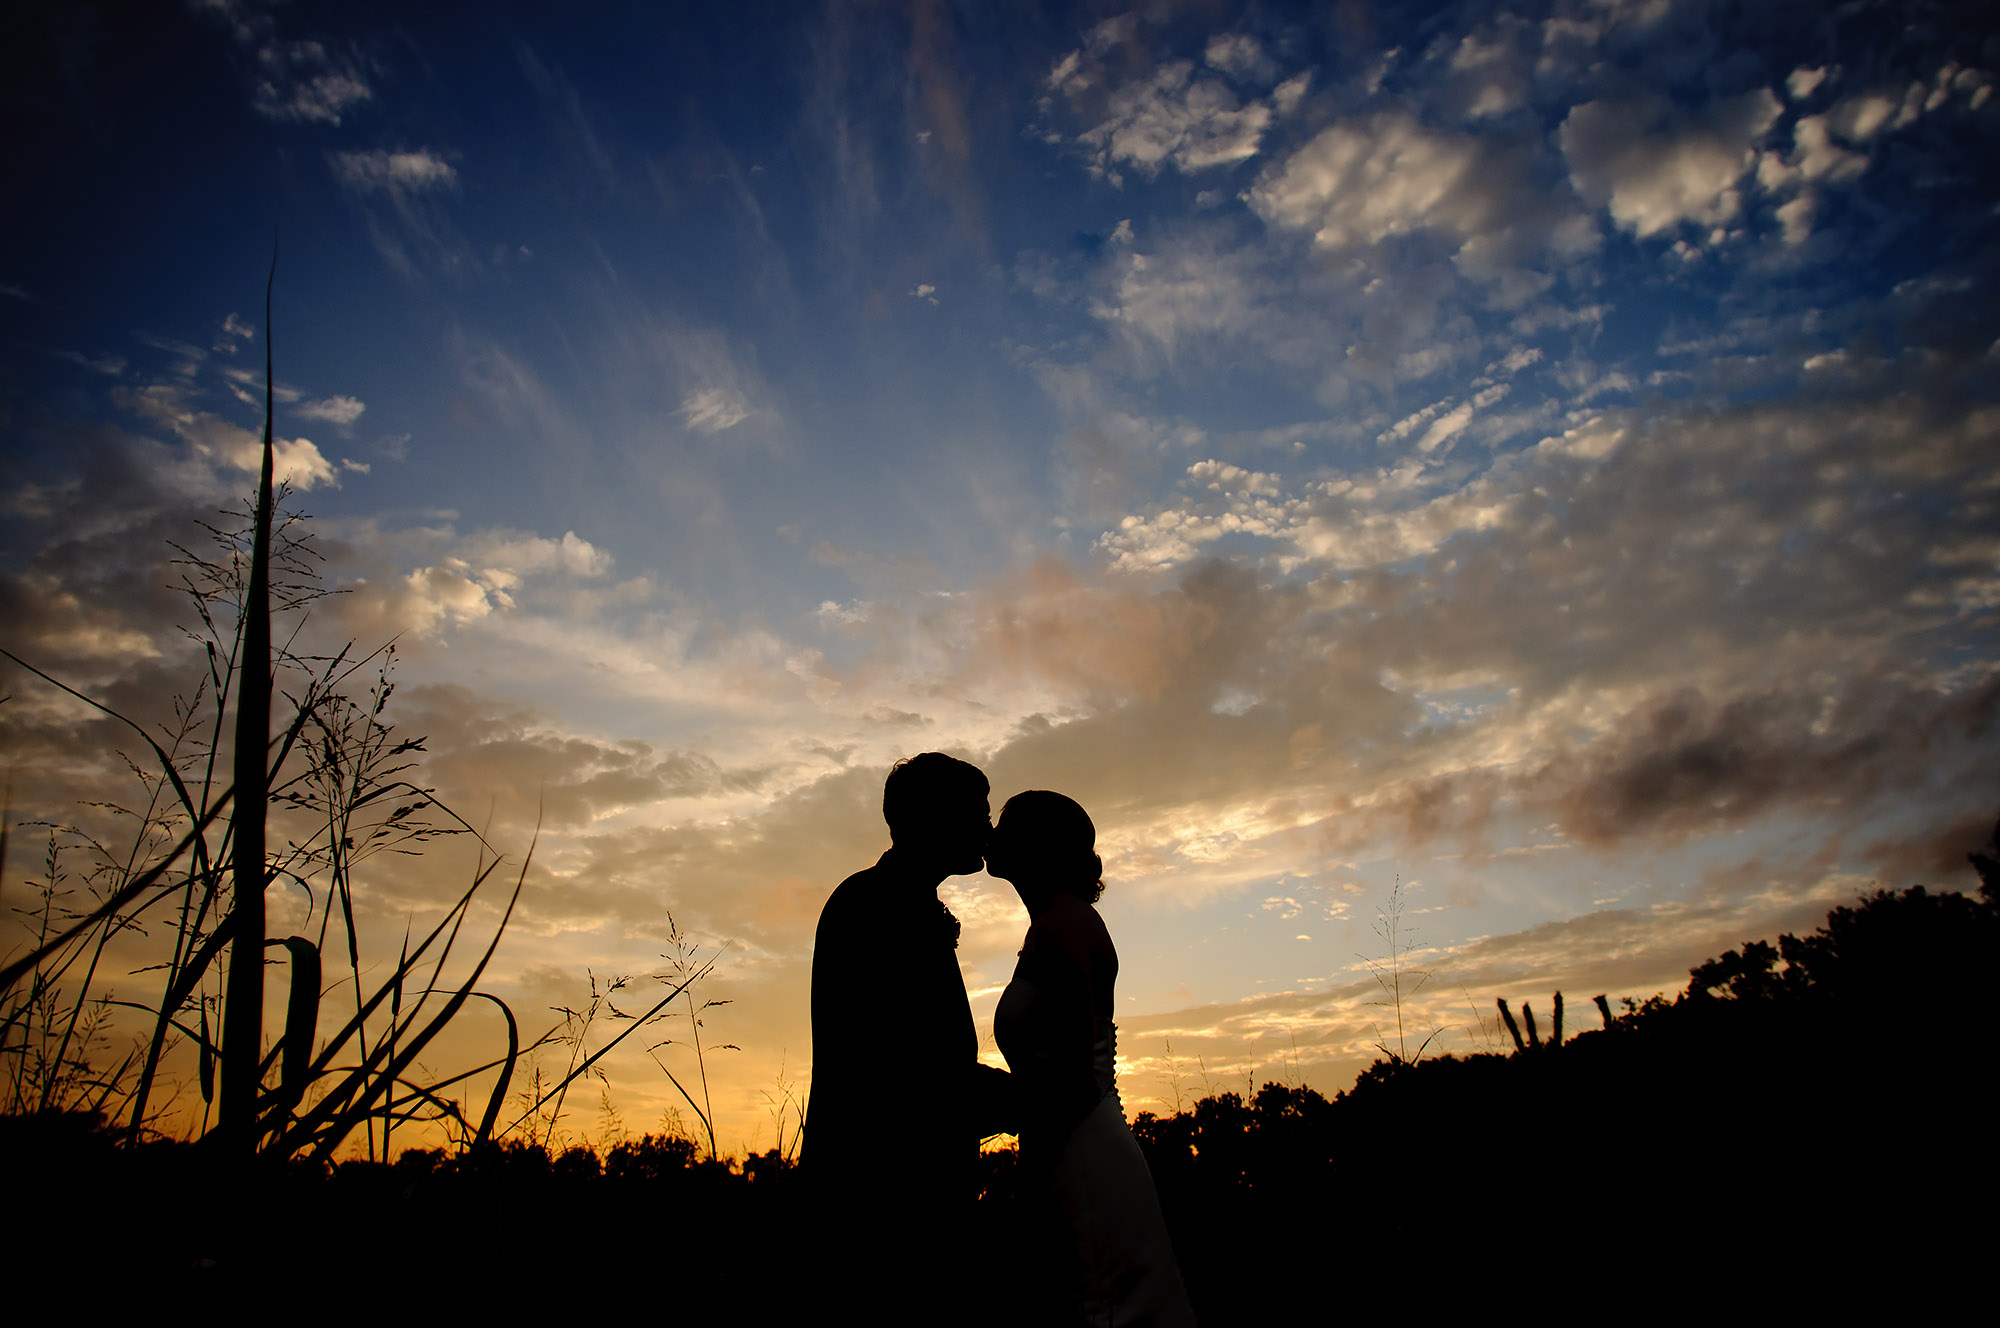 Chris and Katie   Wedding at Dothan Church   Clarks Hill, SC